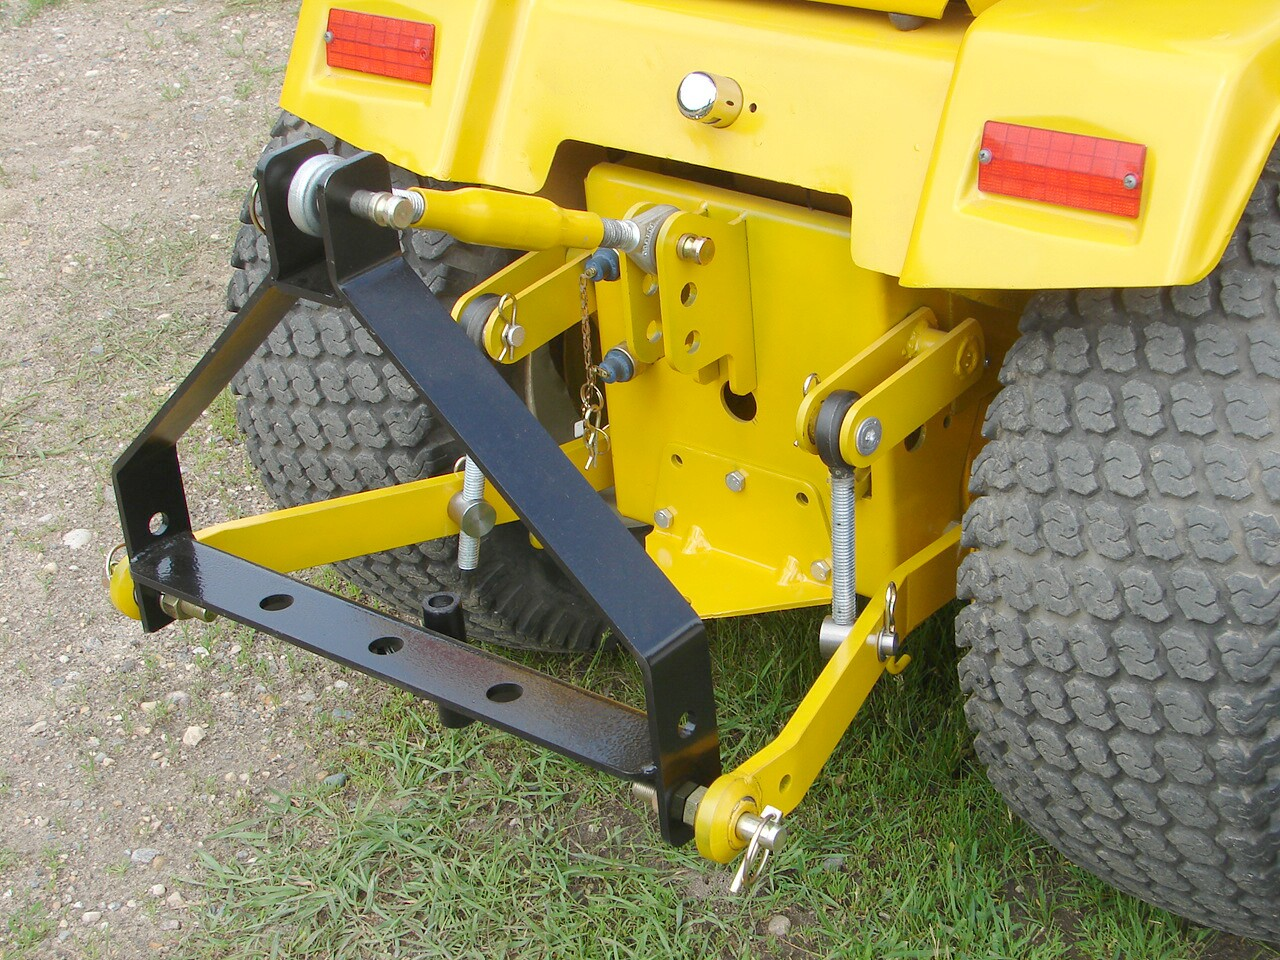 Category 0 Tractor Plow : International harvester ih cub cadet points sleeve hitch